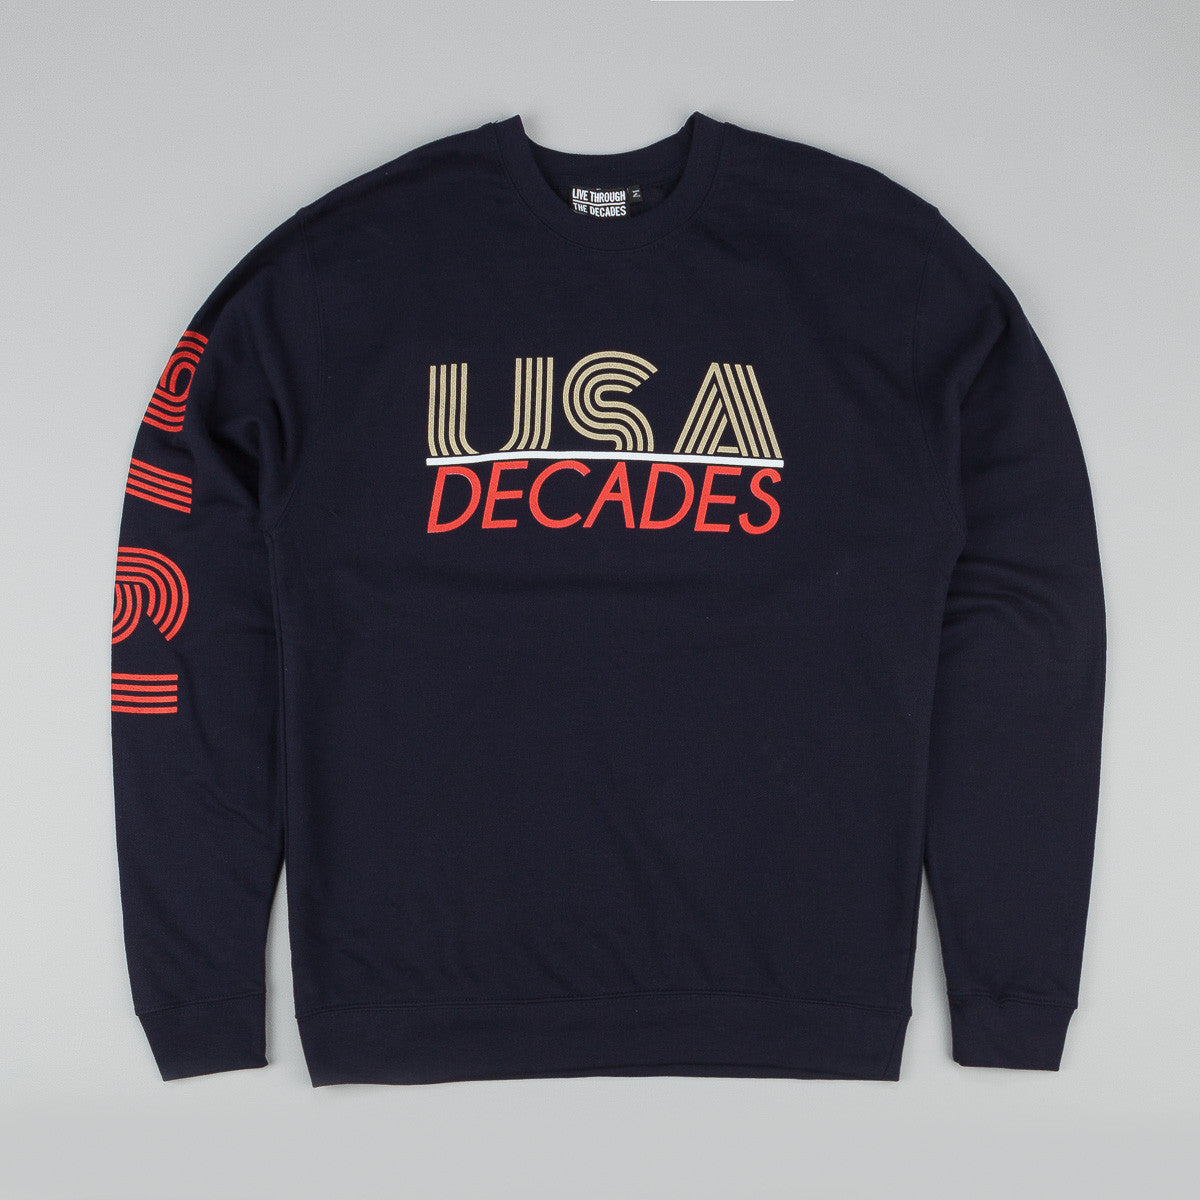 The Decades 'Team USA' Crew Neck Sweatshirt